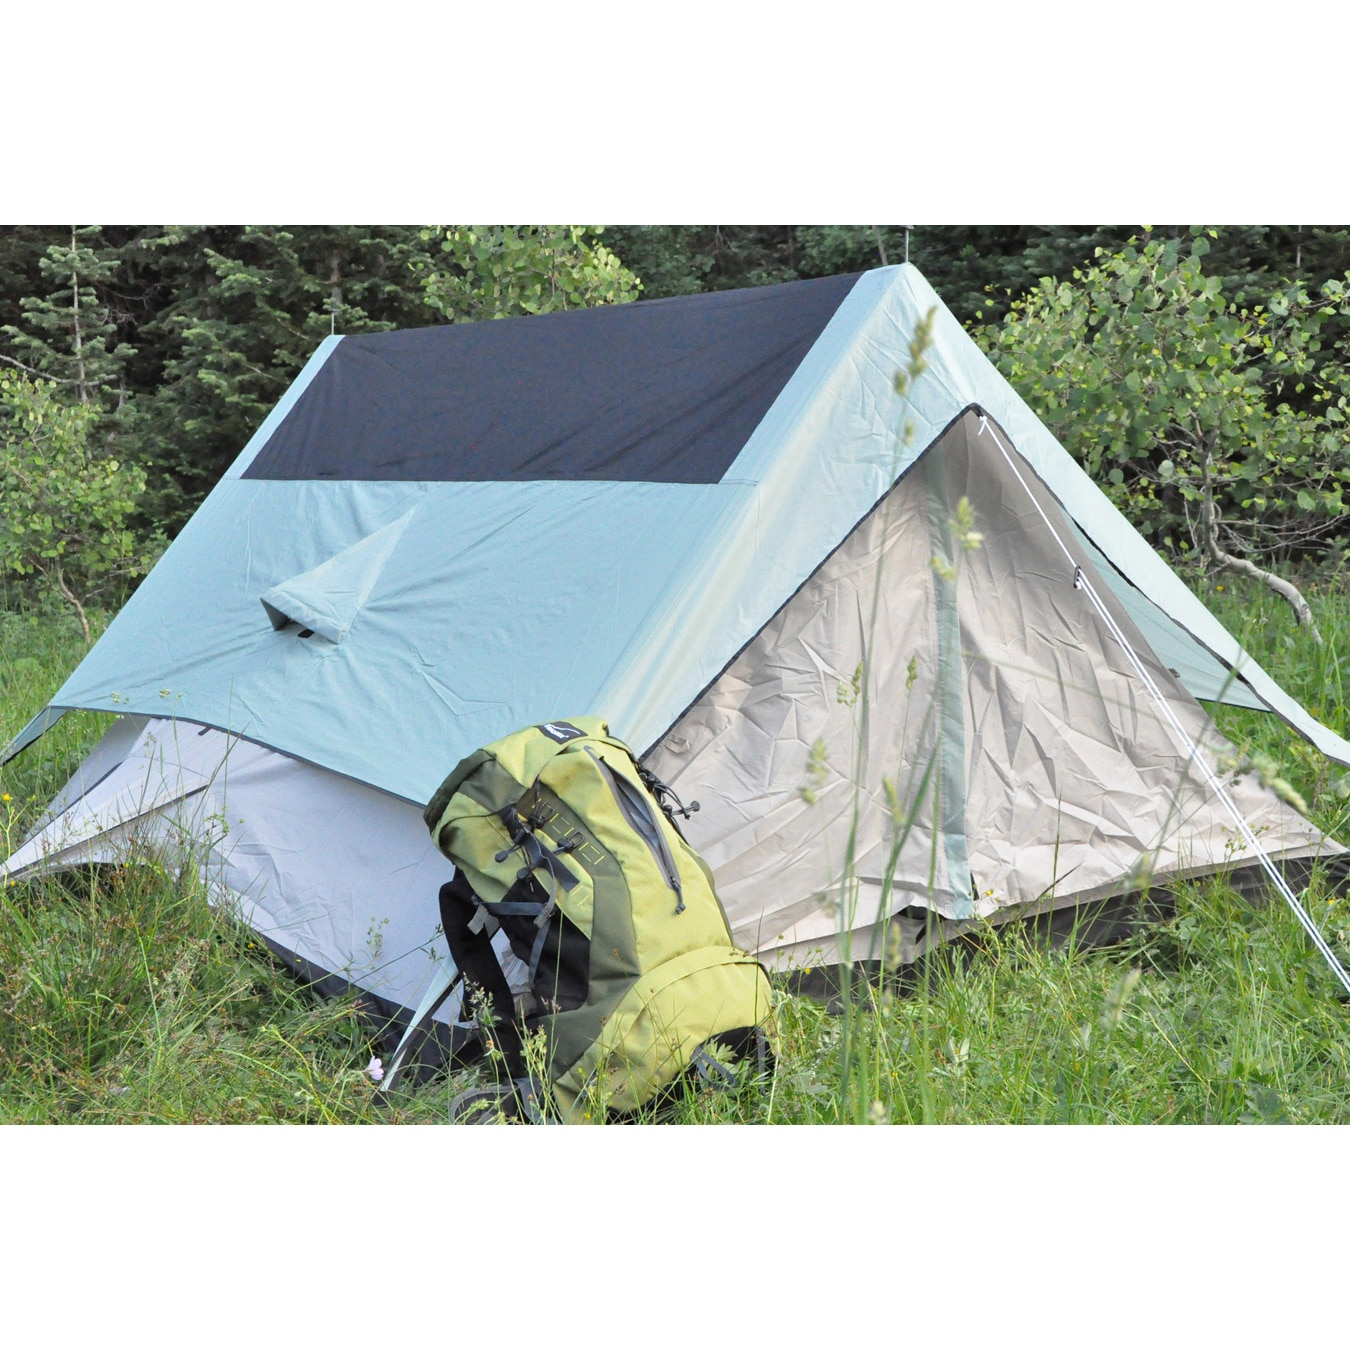 Black Pines Sports '3 Pines' Three-person Tent